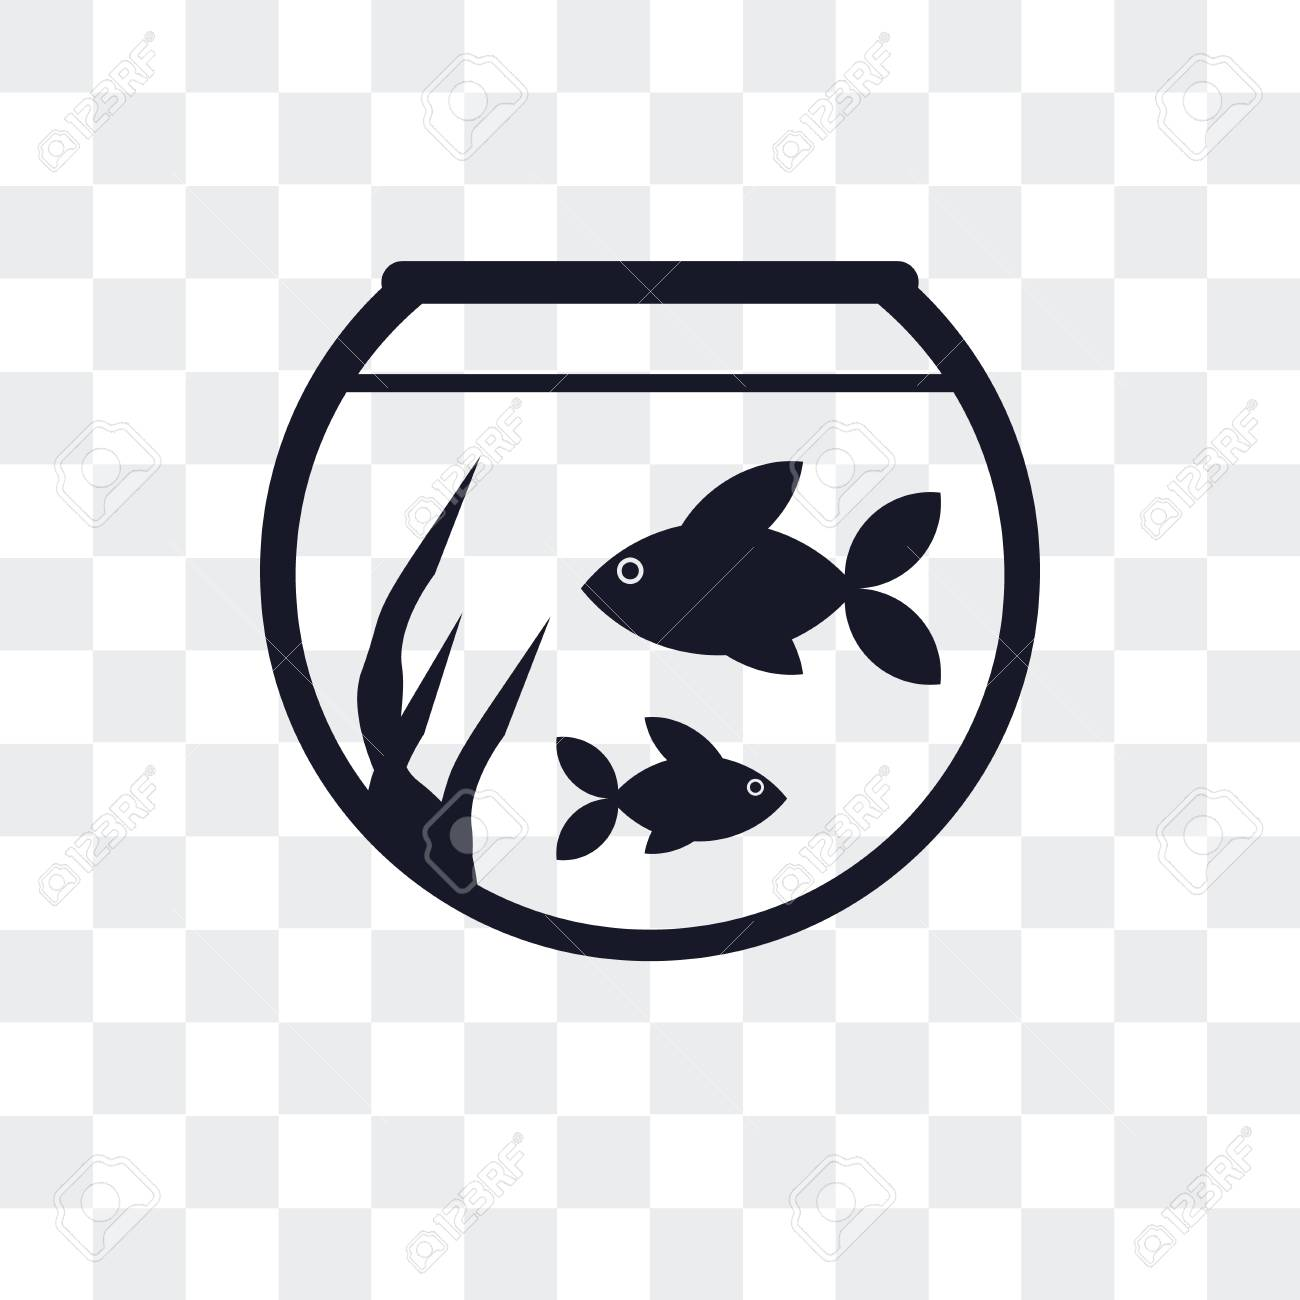 Fish Bowl Vector Icon Isolated On Transparent Background Royalty